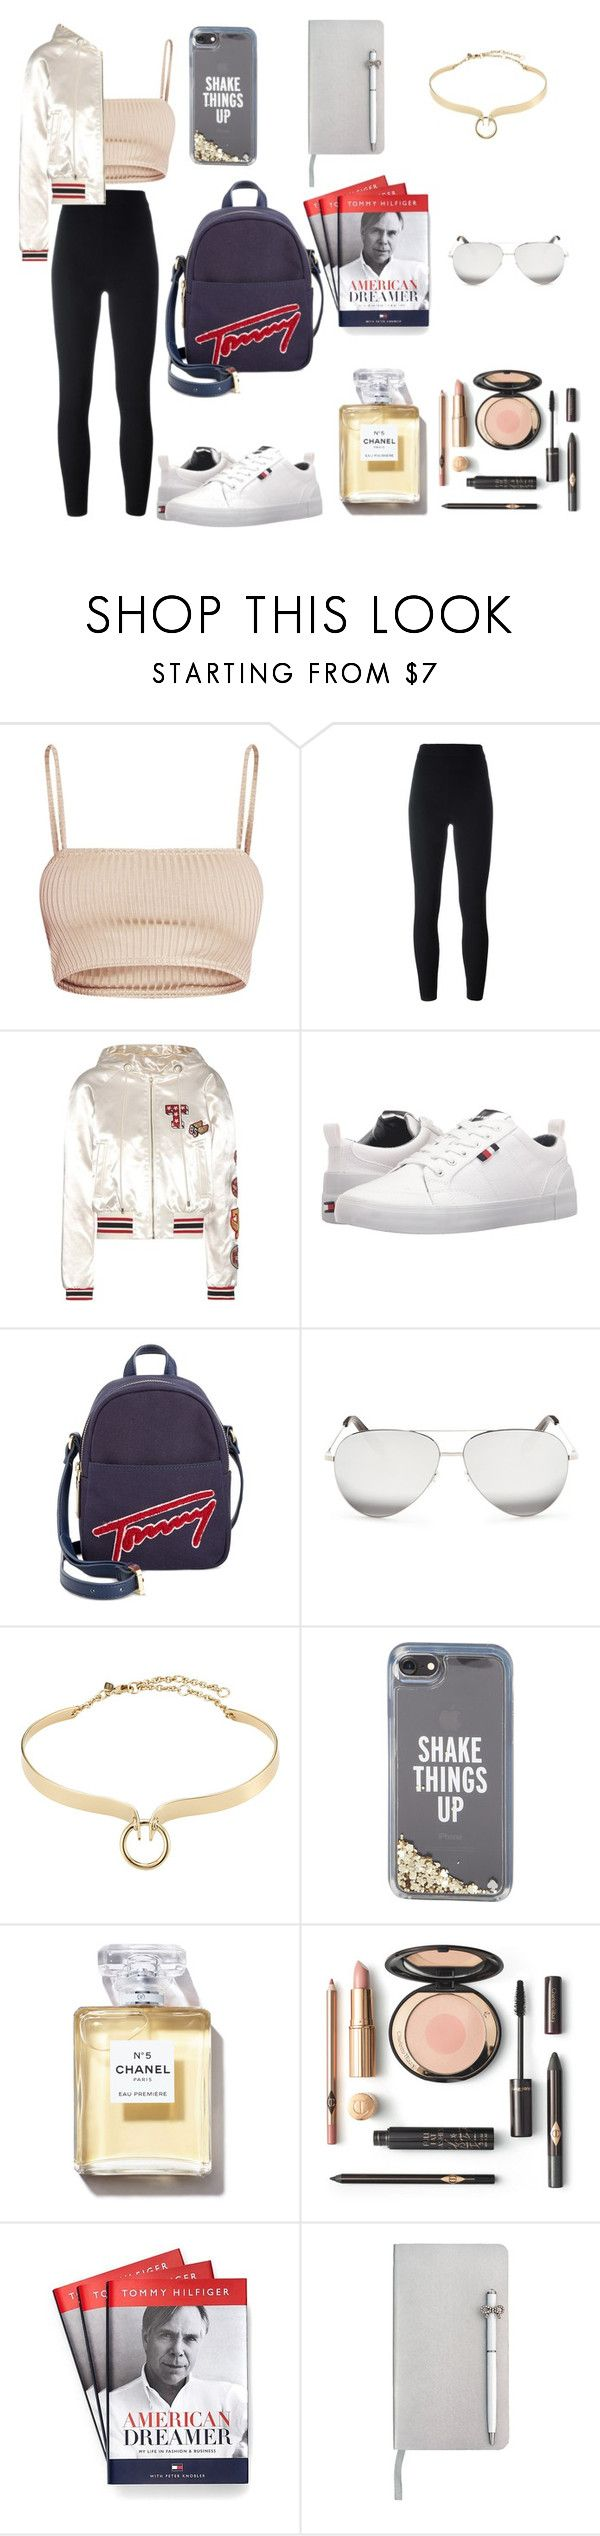 """""""Tommy Hilfiger 🤗"""" by hanin-elsamad ❤ liked on Polyvore featuring adidas Originals, Tommy Hilfiger, Victoria Beckham, Alexis Bittar, Kate Spade and ICE London"""